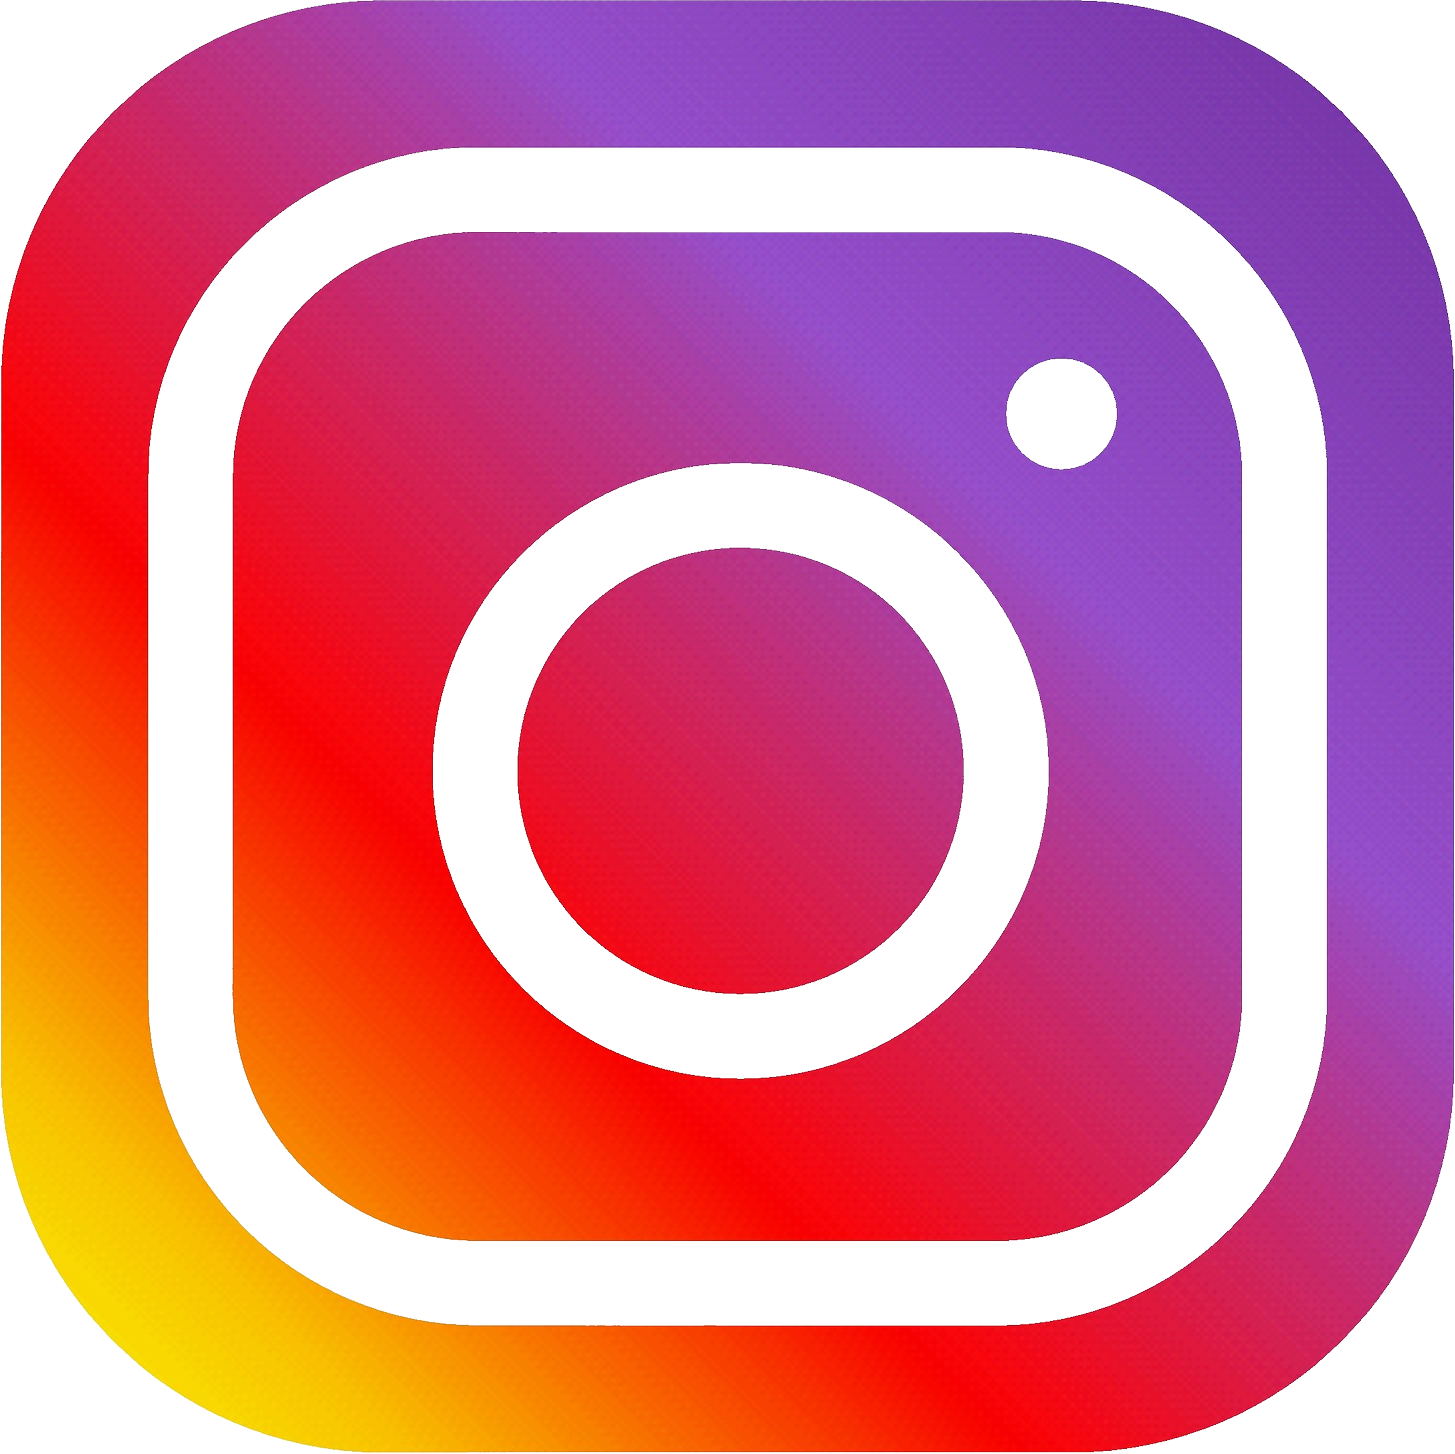 CryoFX.com is on Instagram